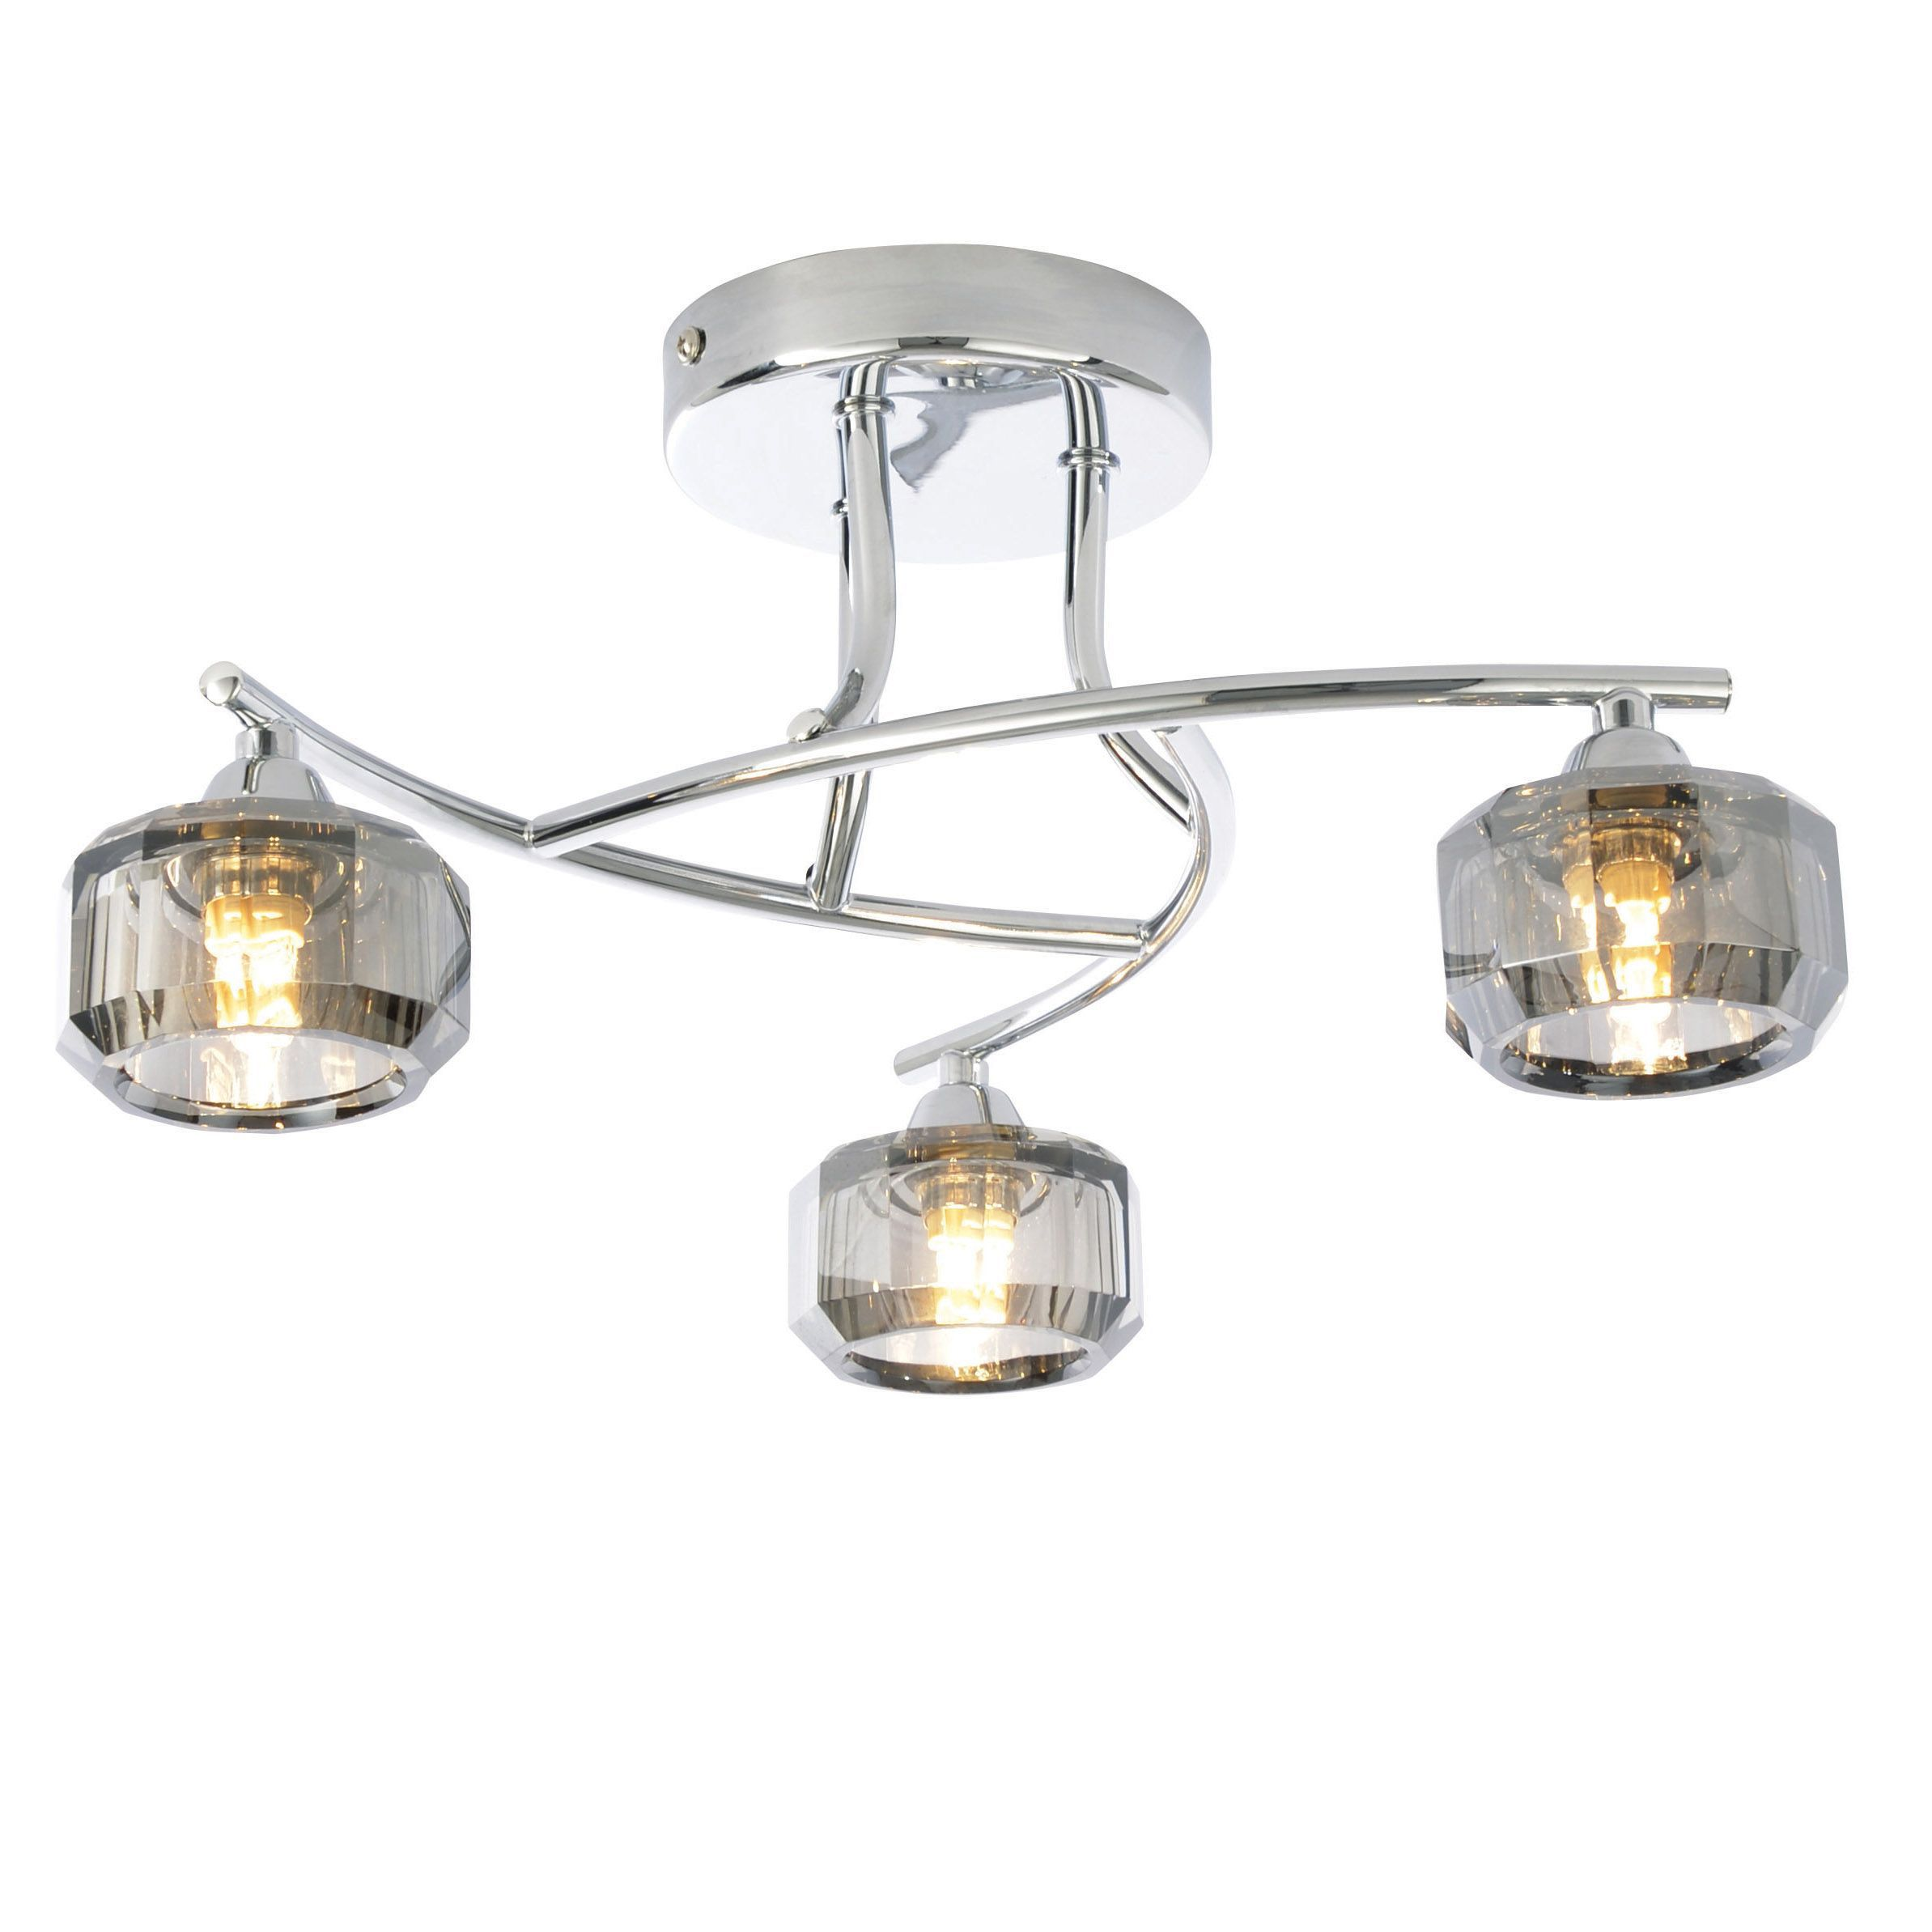 Allyn Clear Chrome Smoked Glass  Lamp Ceiling Light